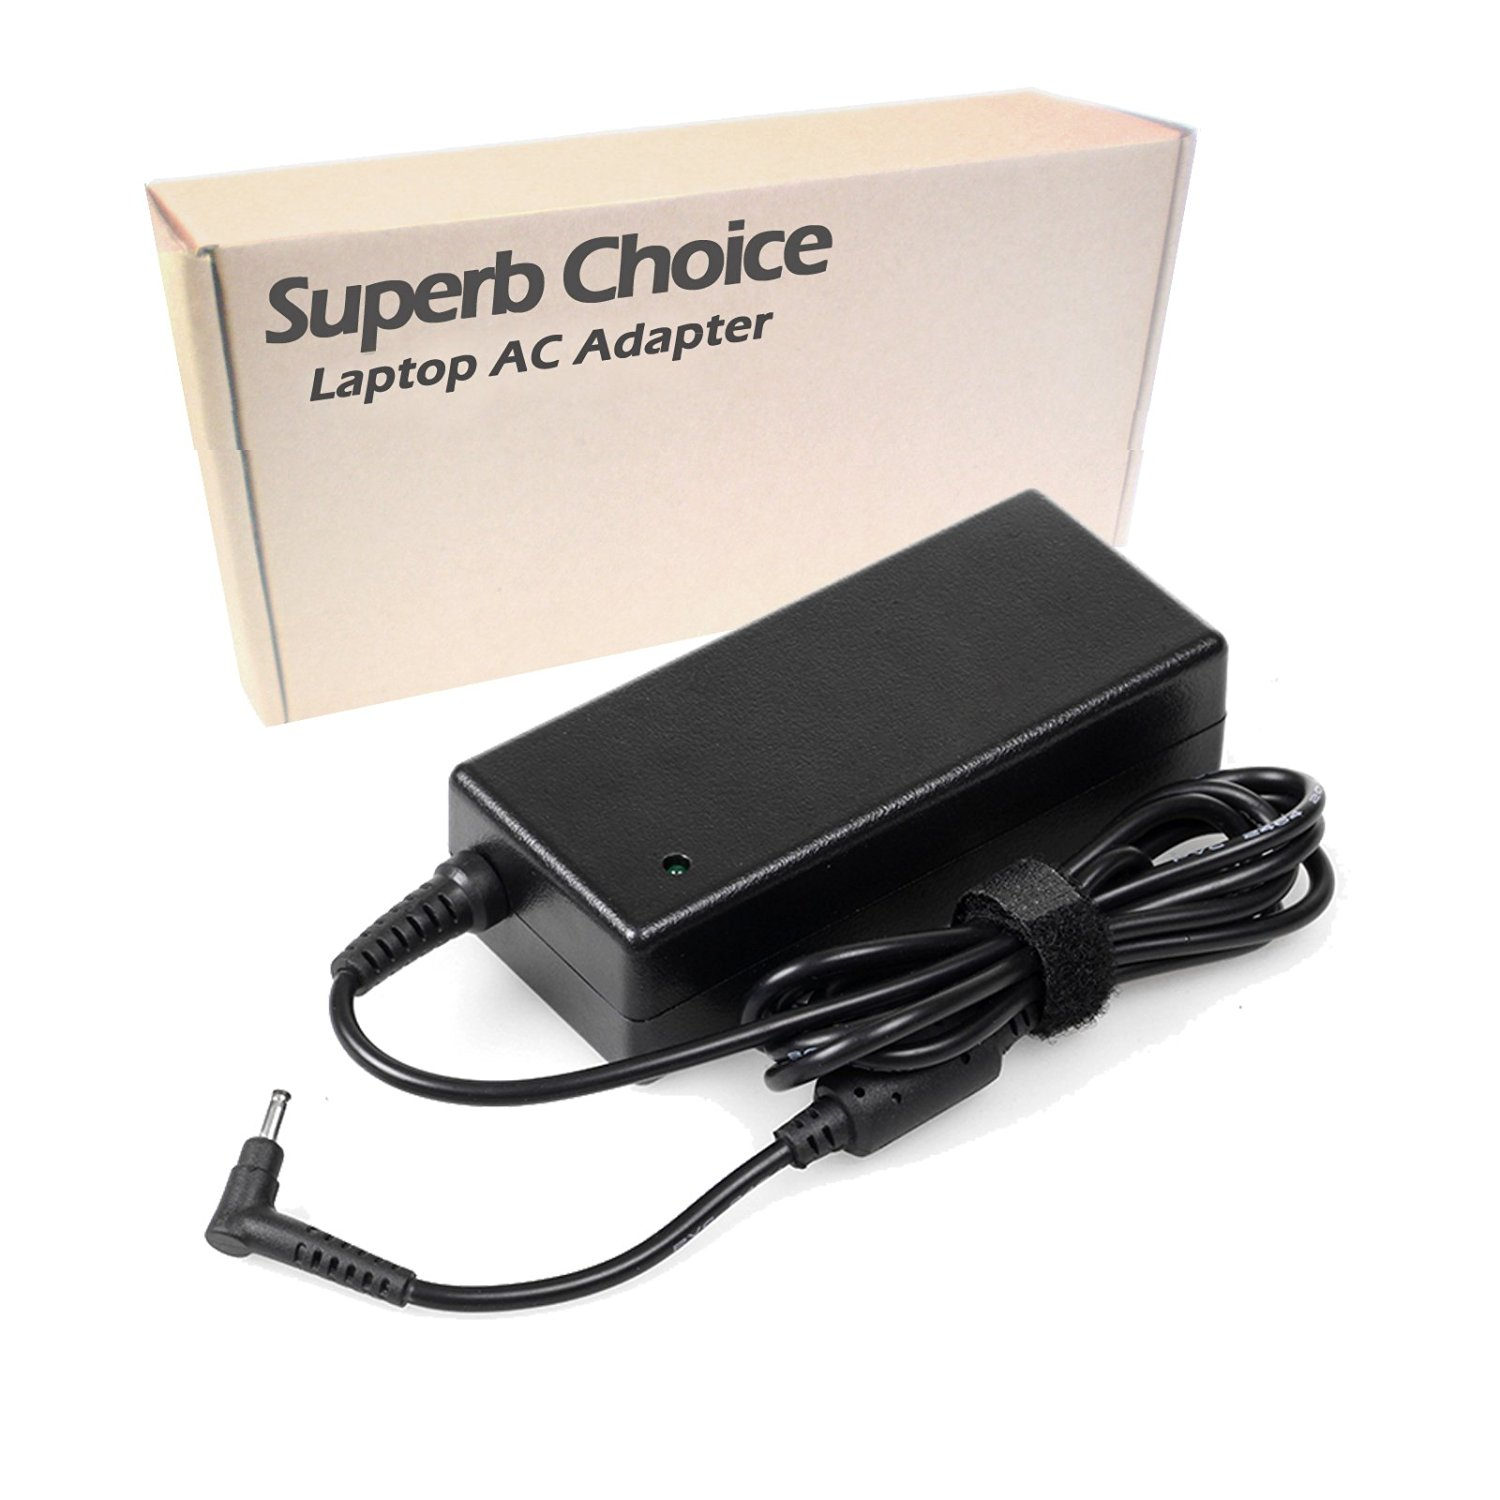 Acer Aspire One Cloudbook 11 14 AO1-131-C9PM AO1-431-C7F9 AC Adapter - Premium Superb Choice® 65W Laptop AC Adapter Battery Charger